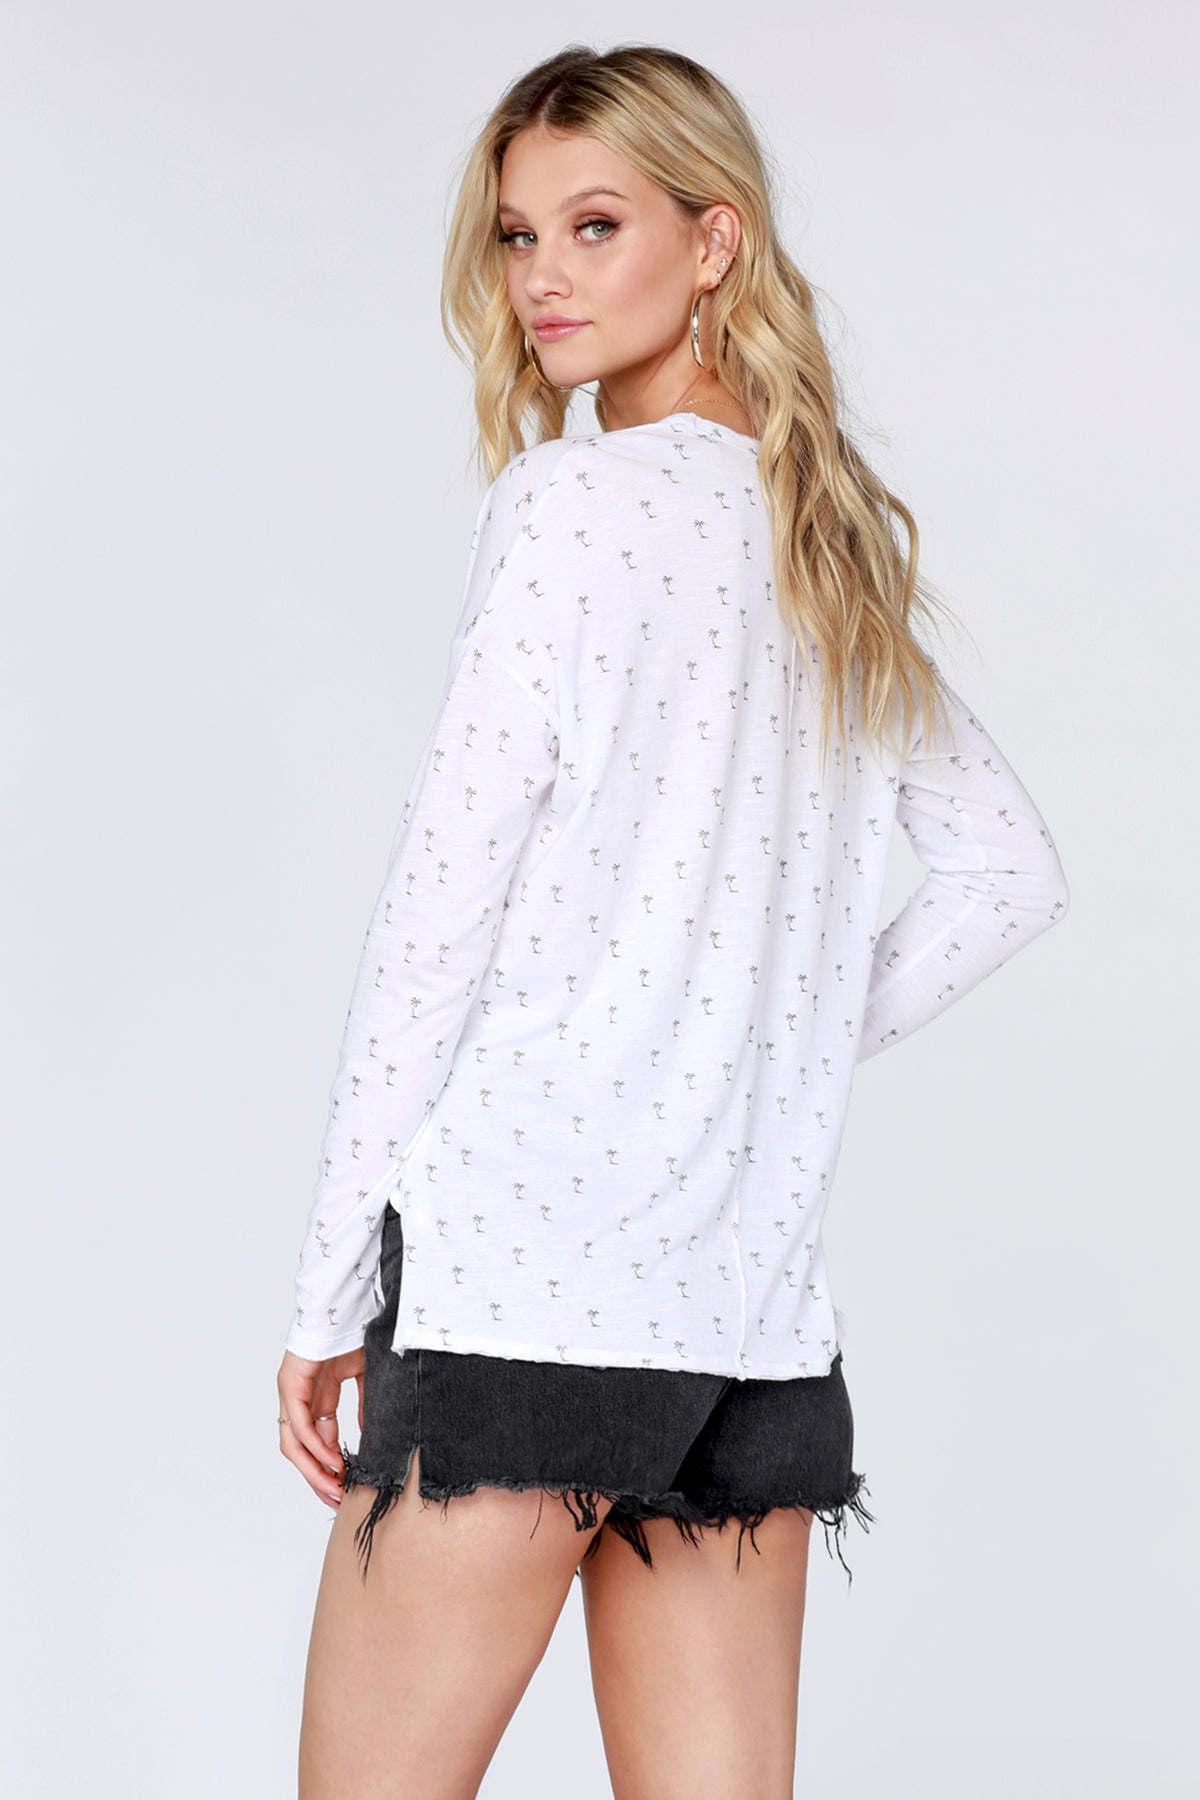 Palm Print Long Sleeve Tee - bobi Los Angeles